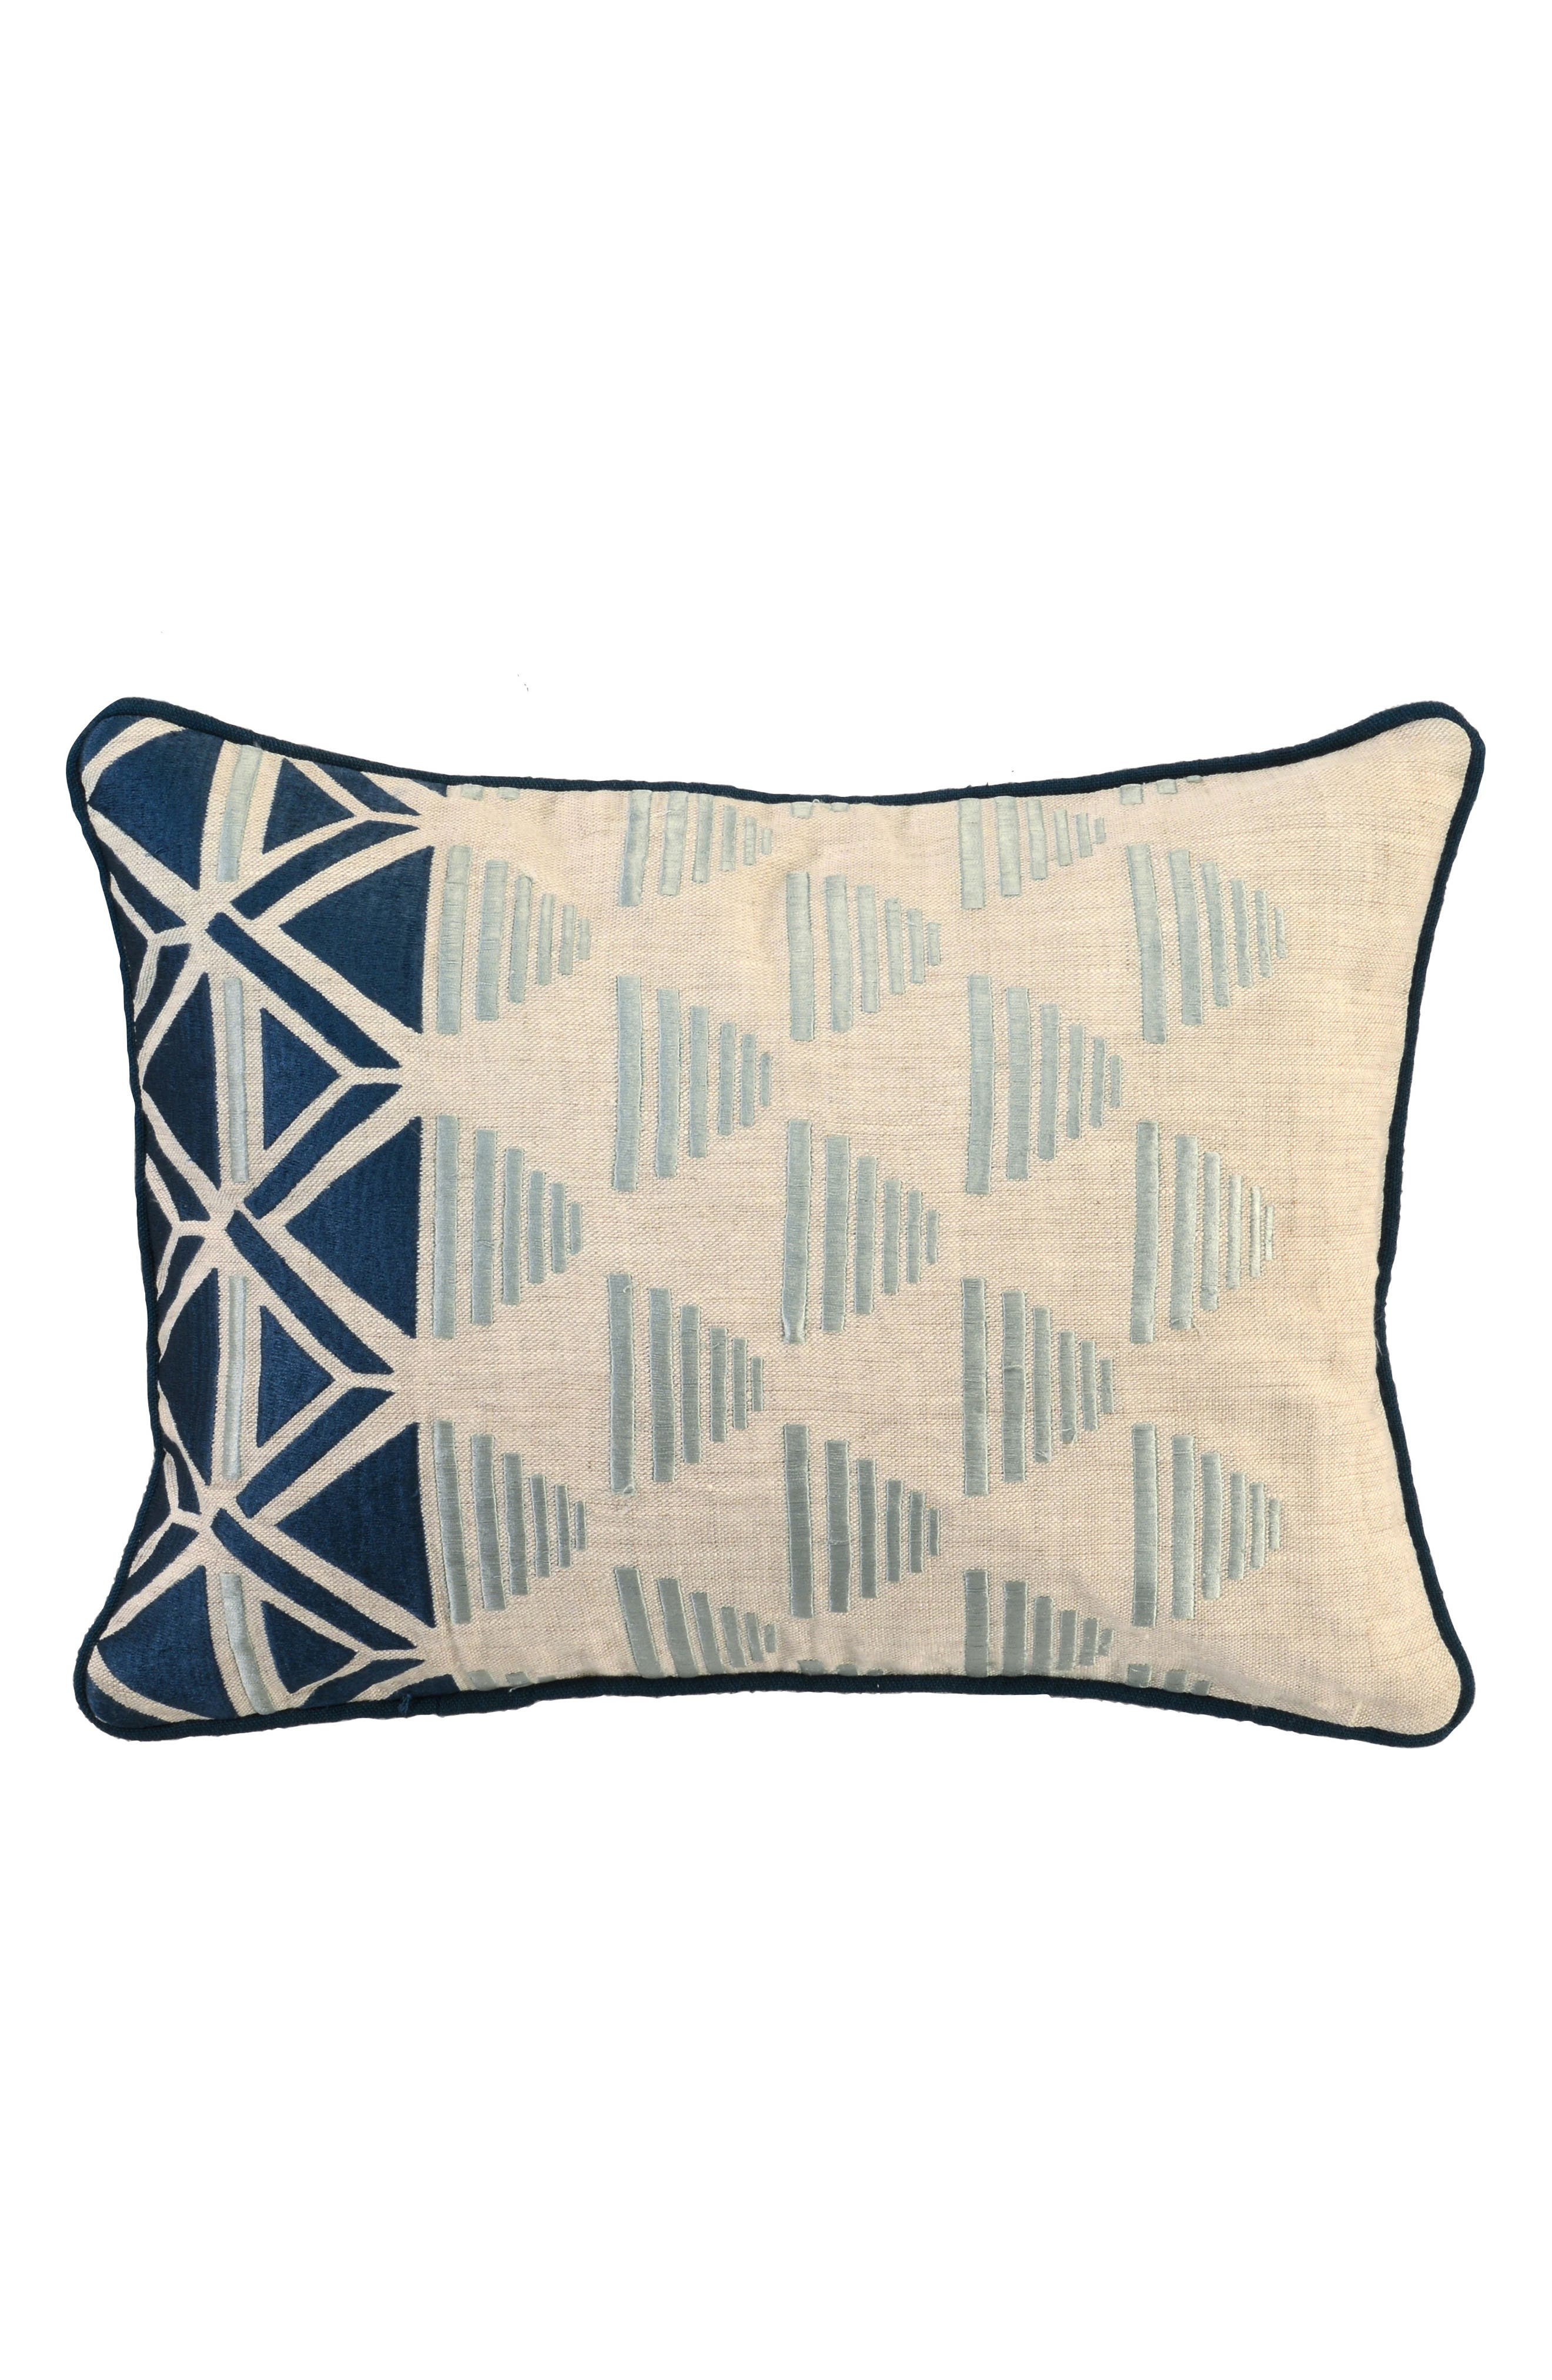 Embroidered Pillow,                             Main thumbnail 1, color,                             400